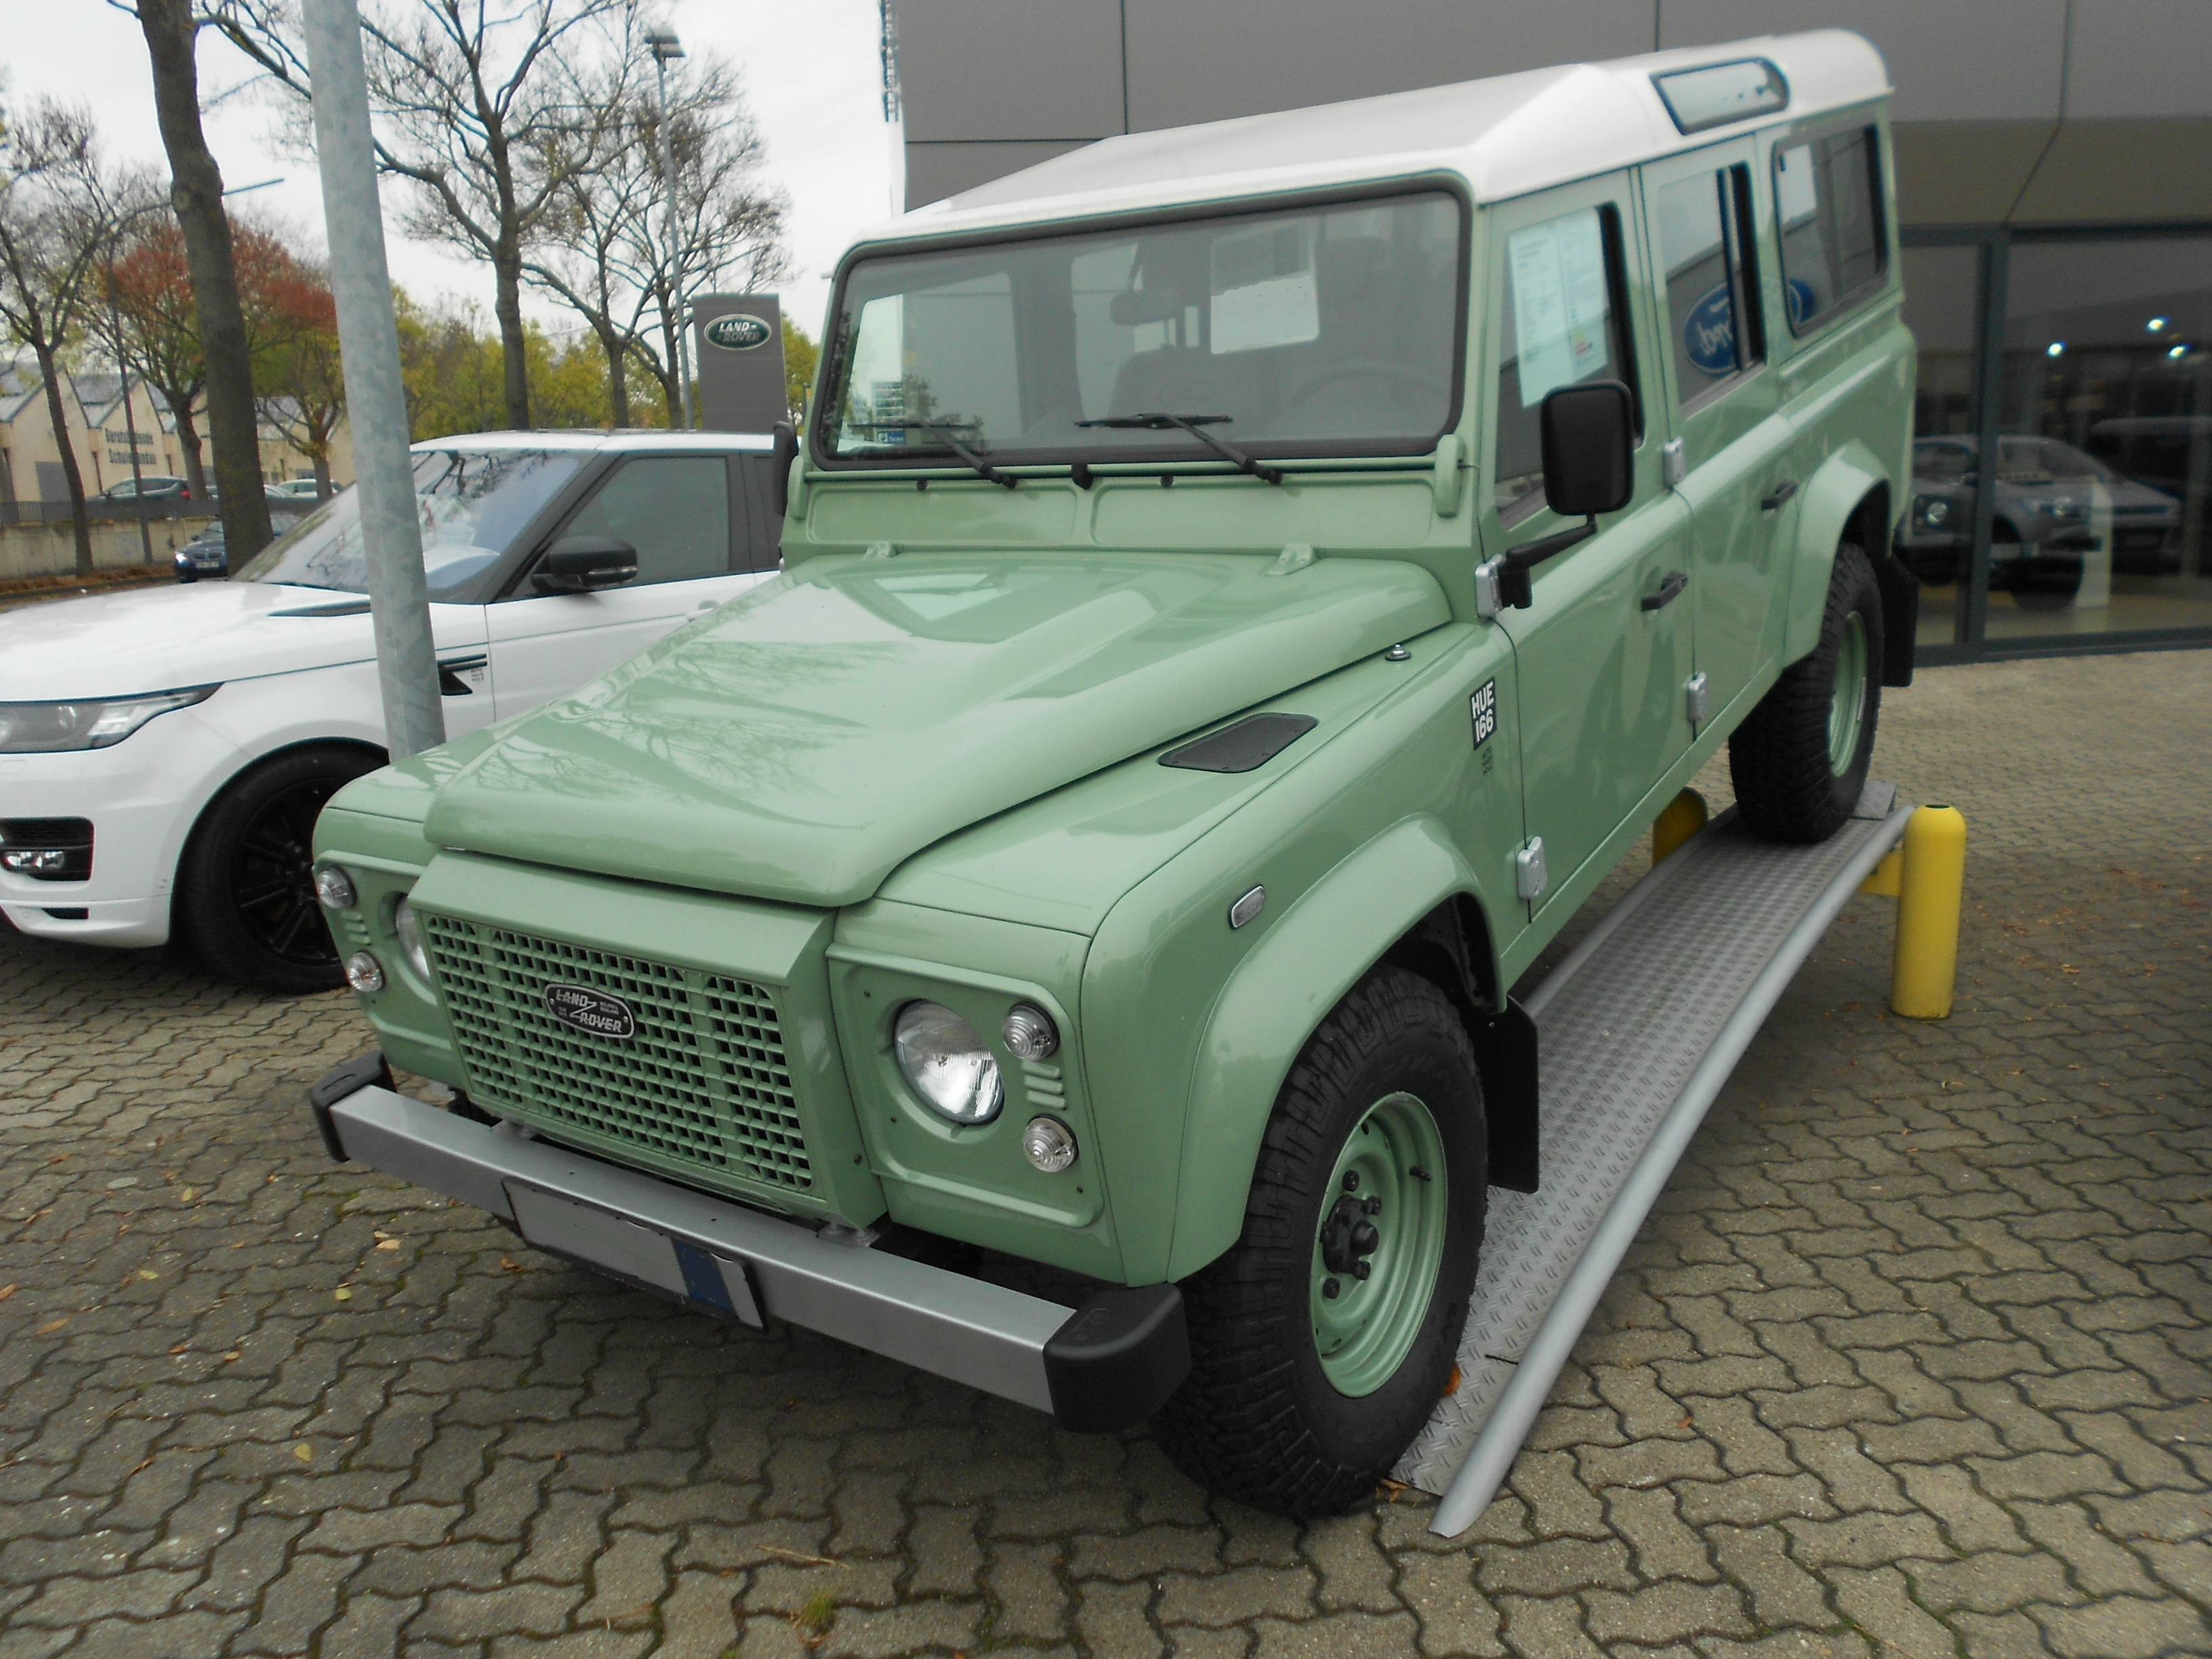 rovers snorkel dsc land steps with rack roof seats pin grey then defender dream pixel the jpg rest